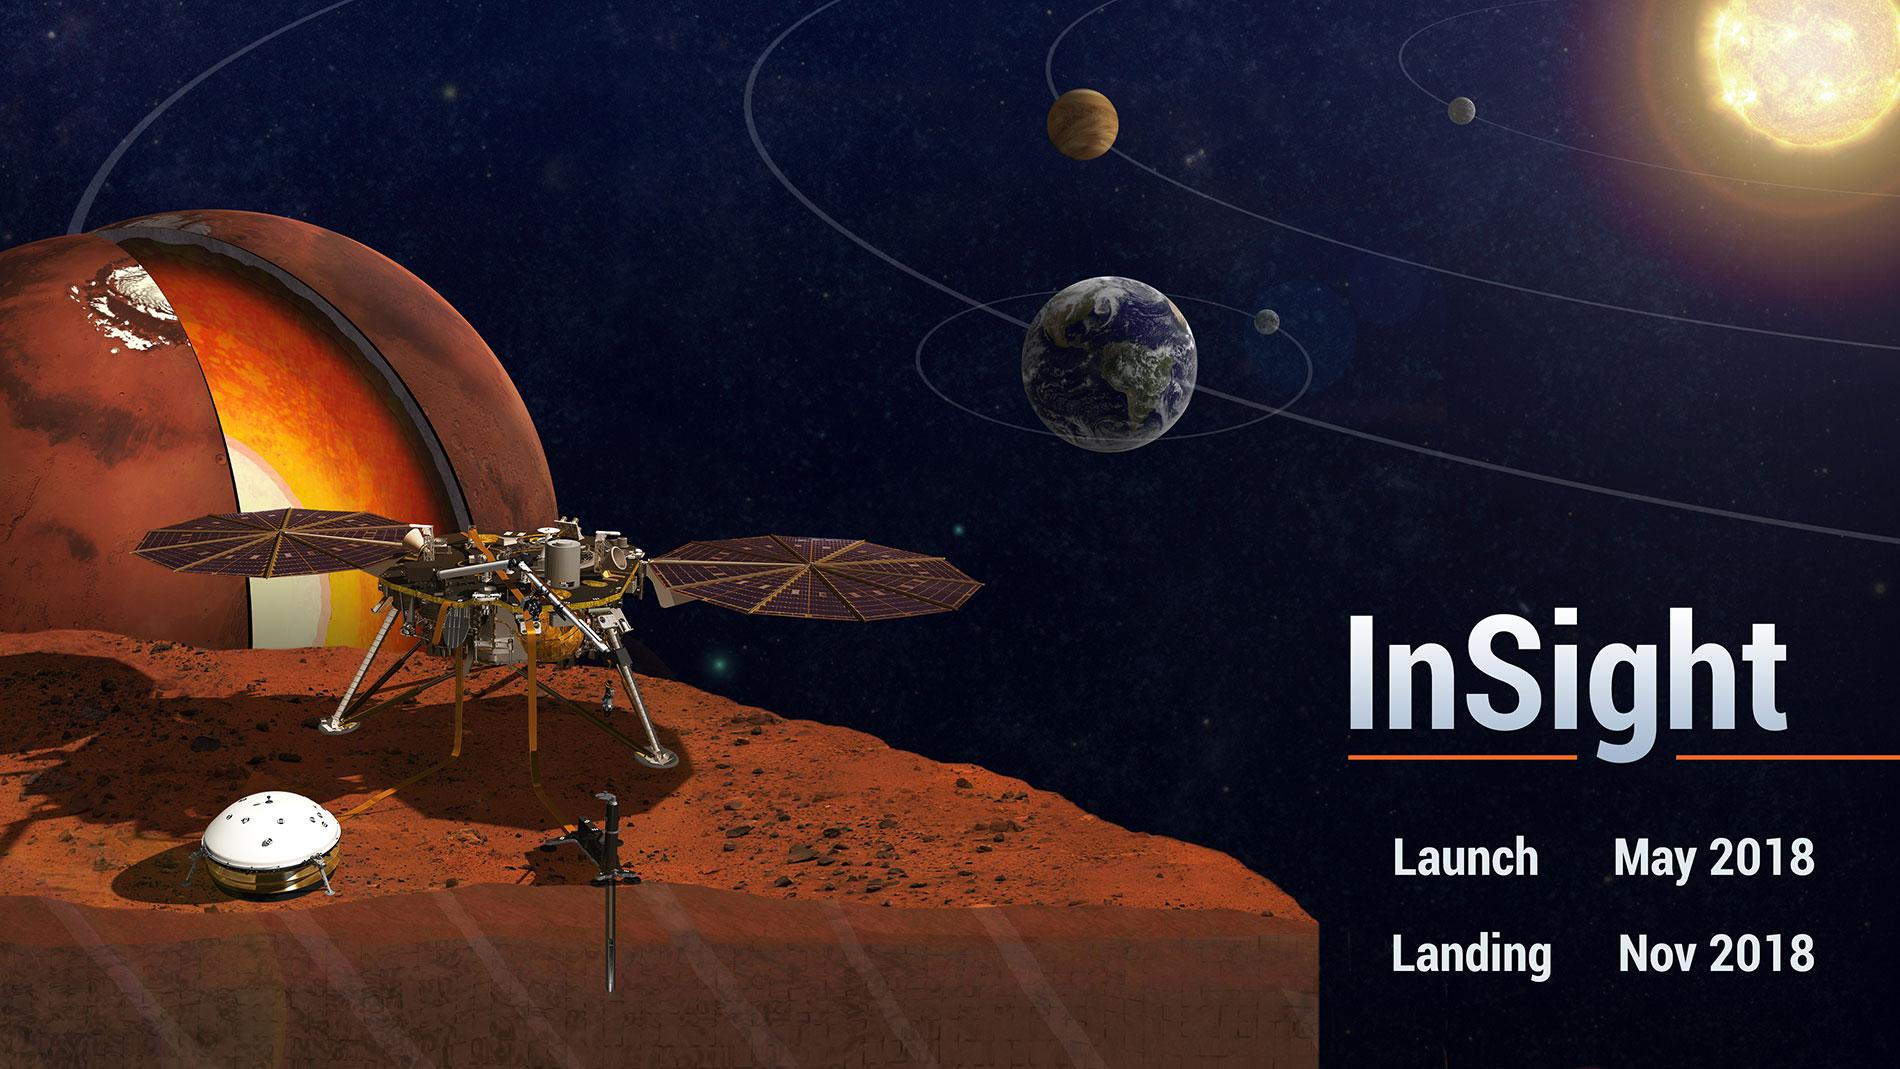 Mars Insight Mission will take your name to the Red planet